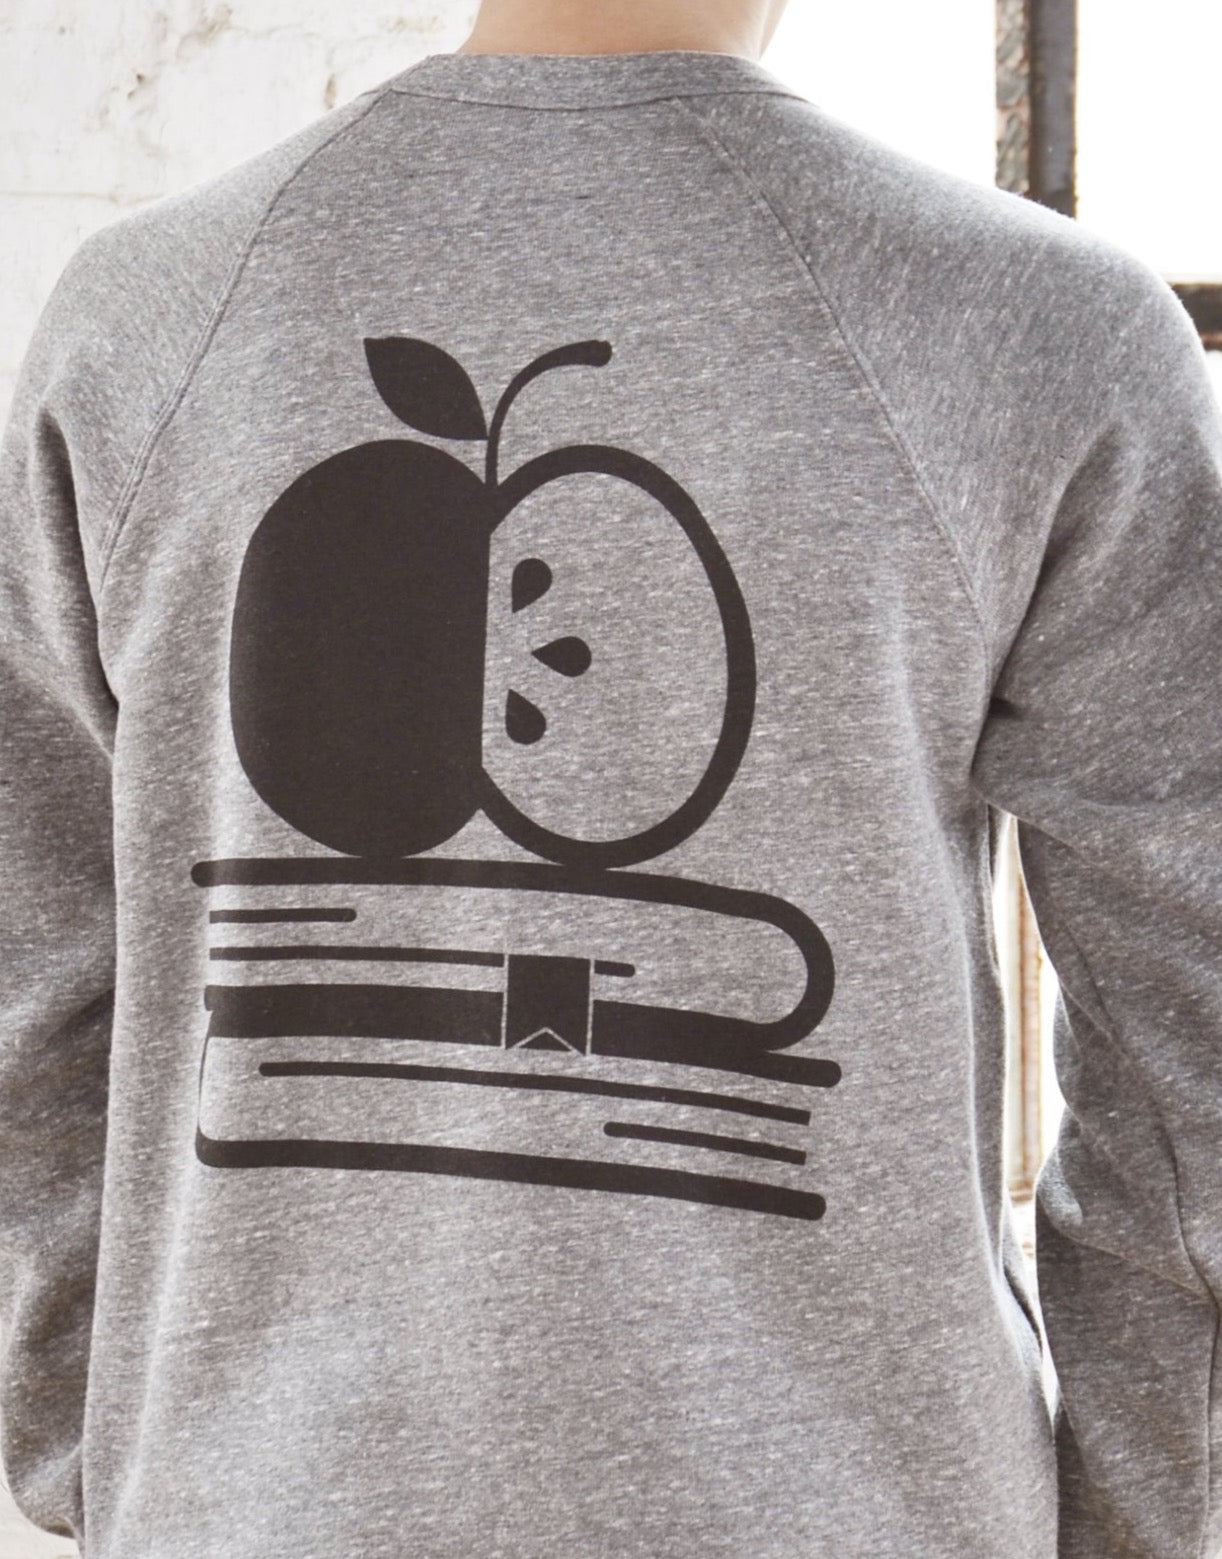 Teacher Sponge Fleece Sweatshirt - Do Work That Matters